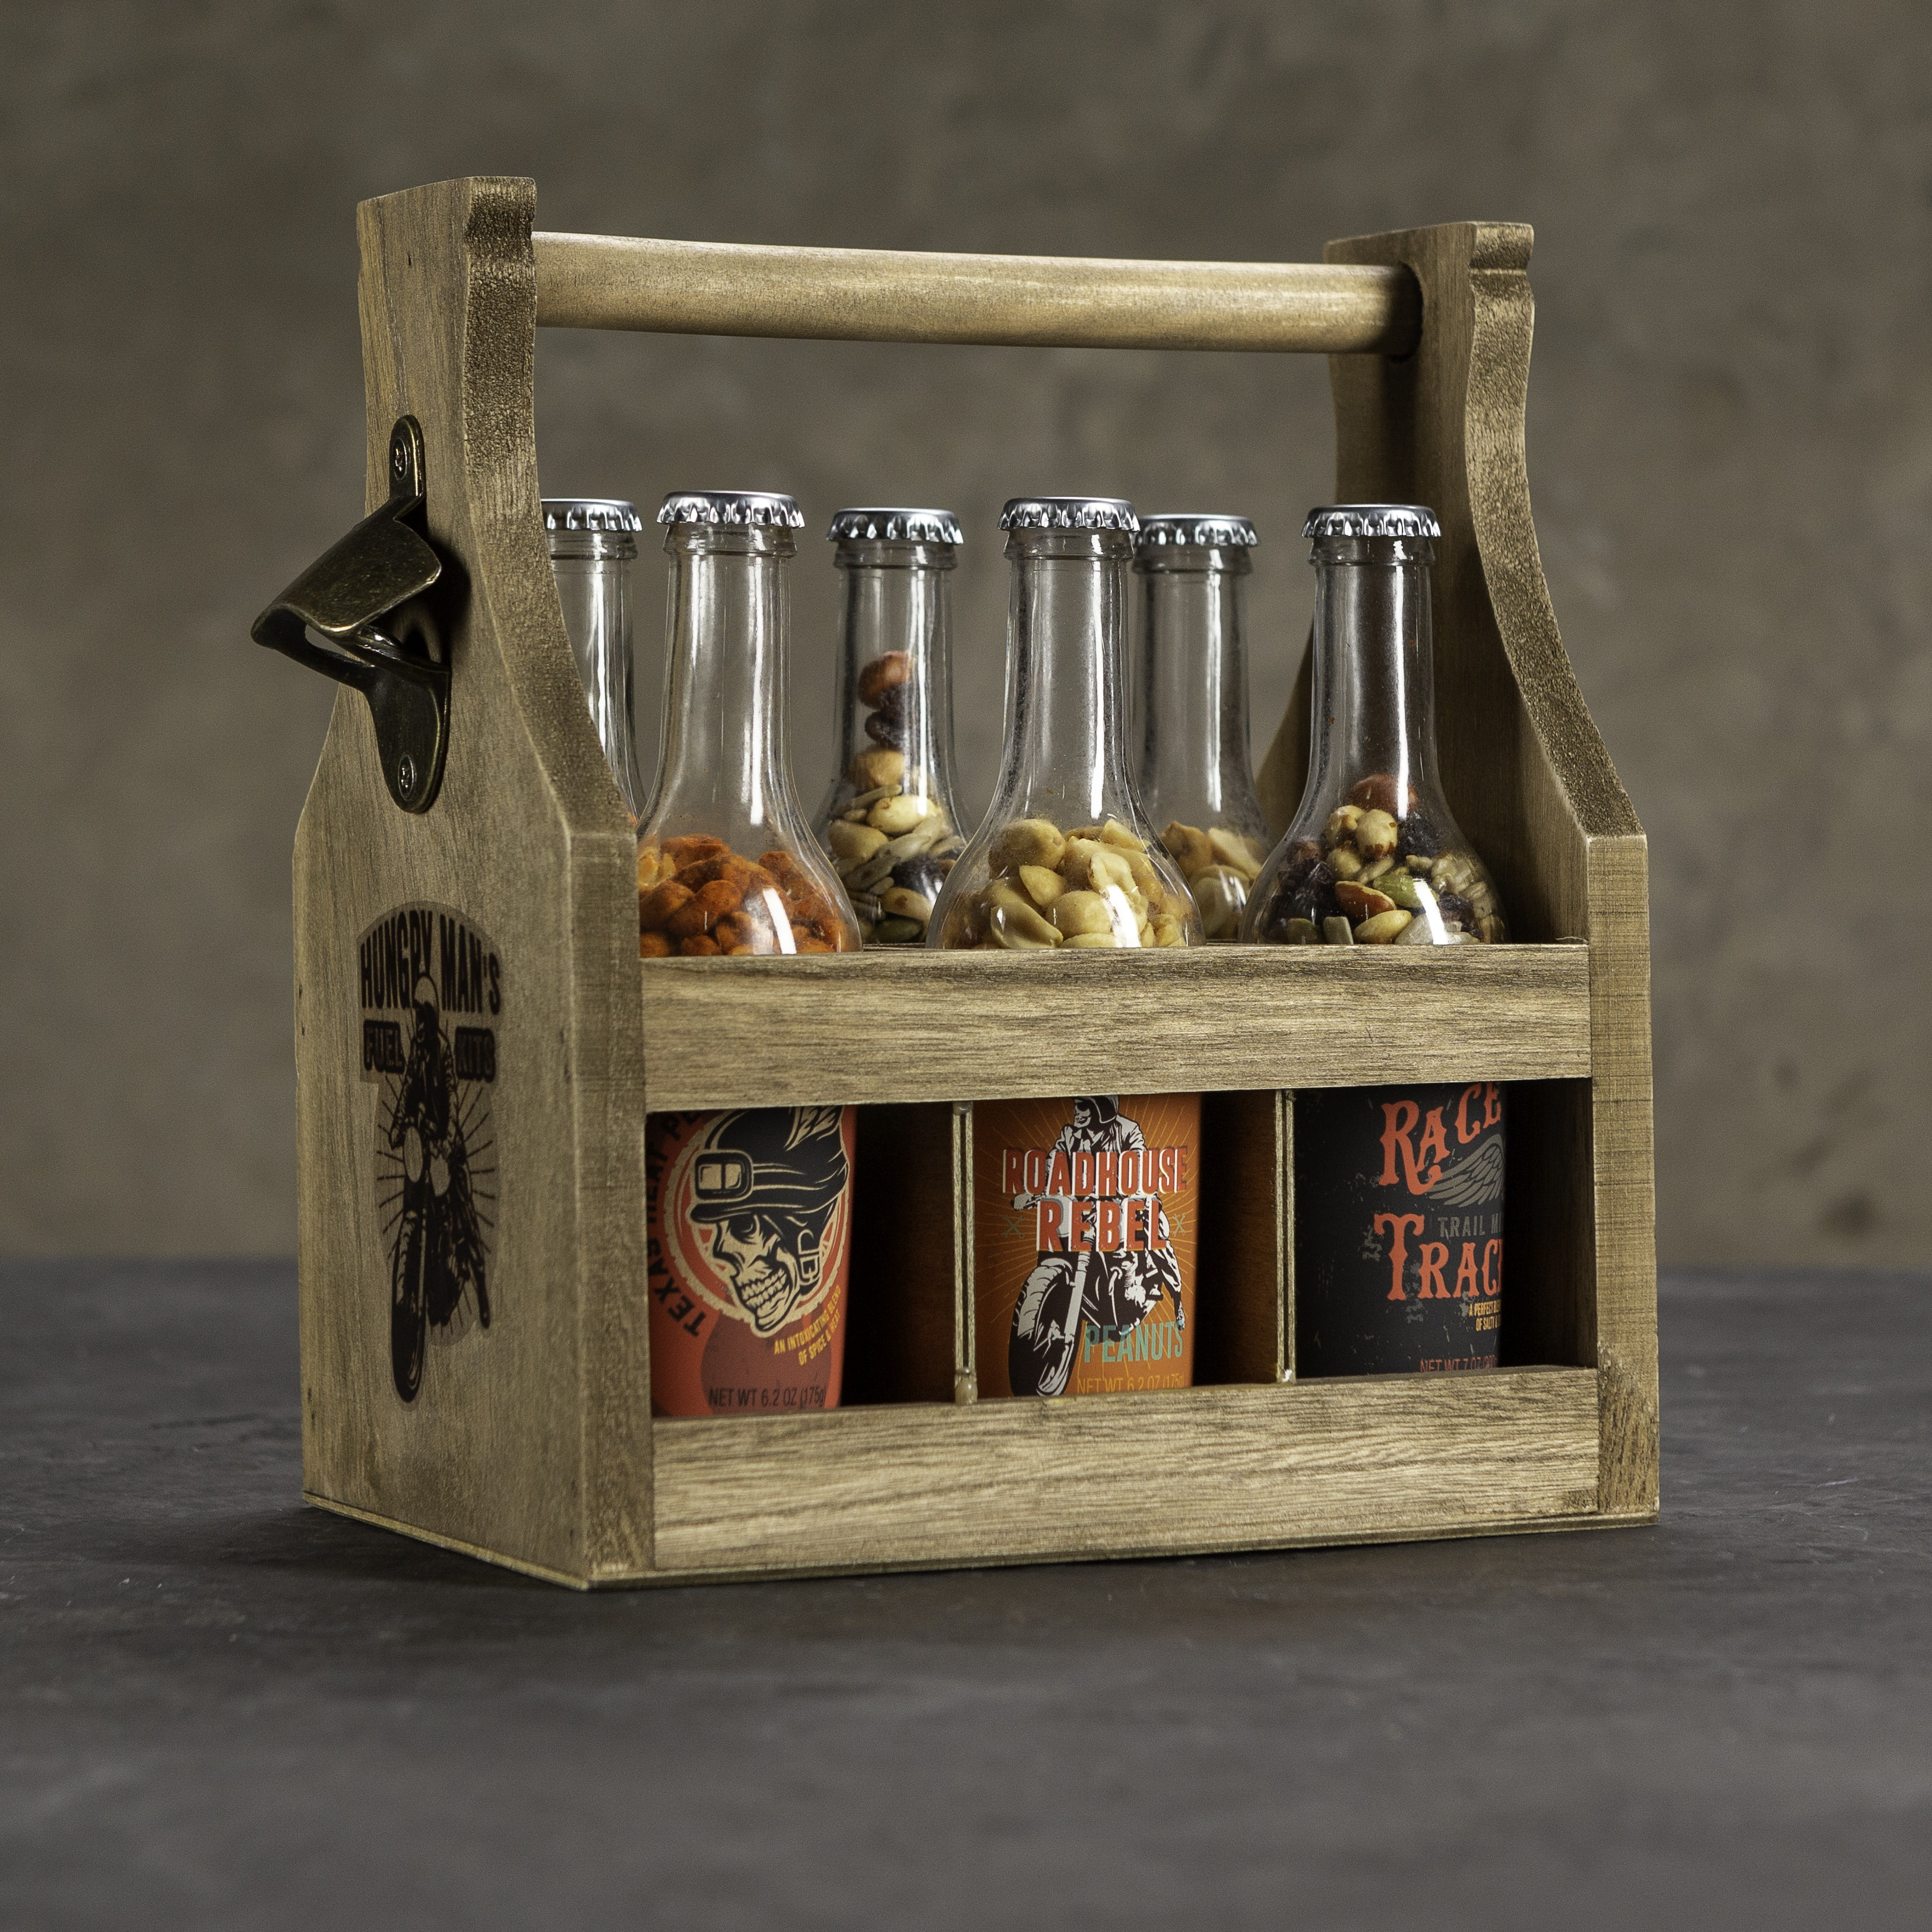 Full nut caddy with bottles